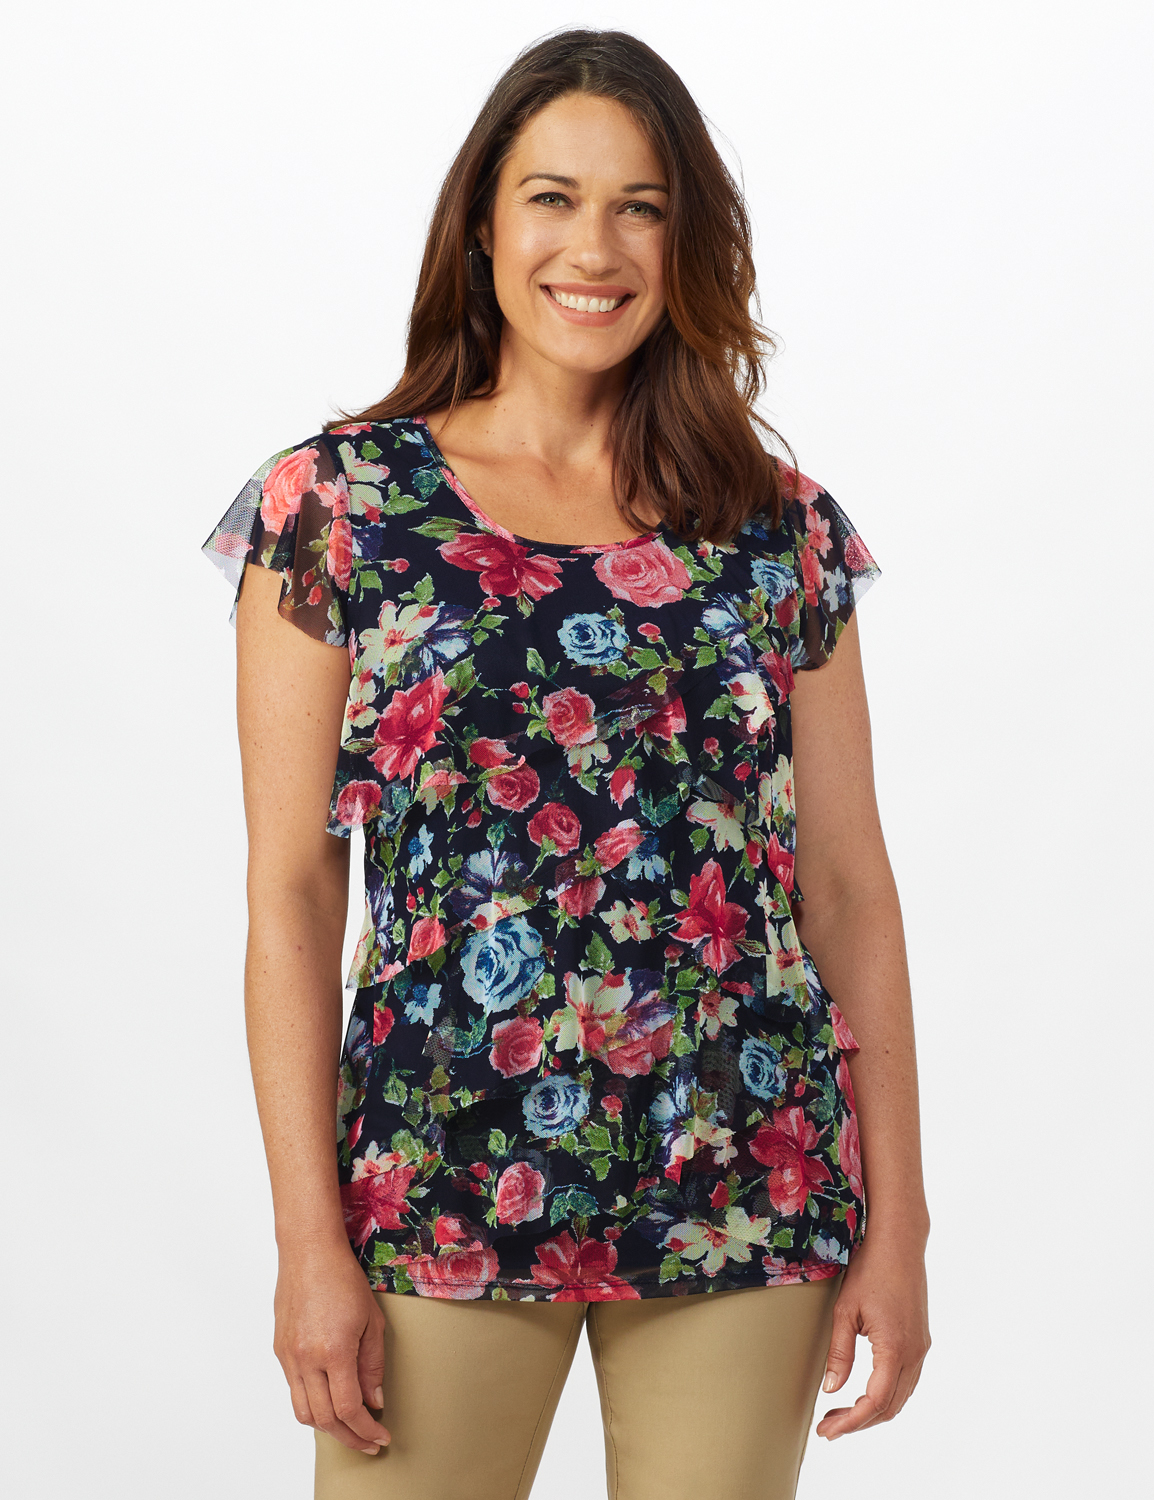 Floral Mesh Tier Knit Top - Misses -Navy - Front